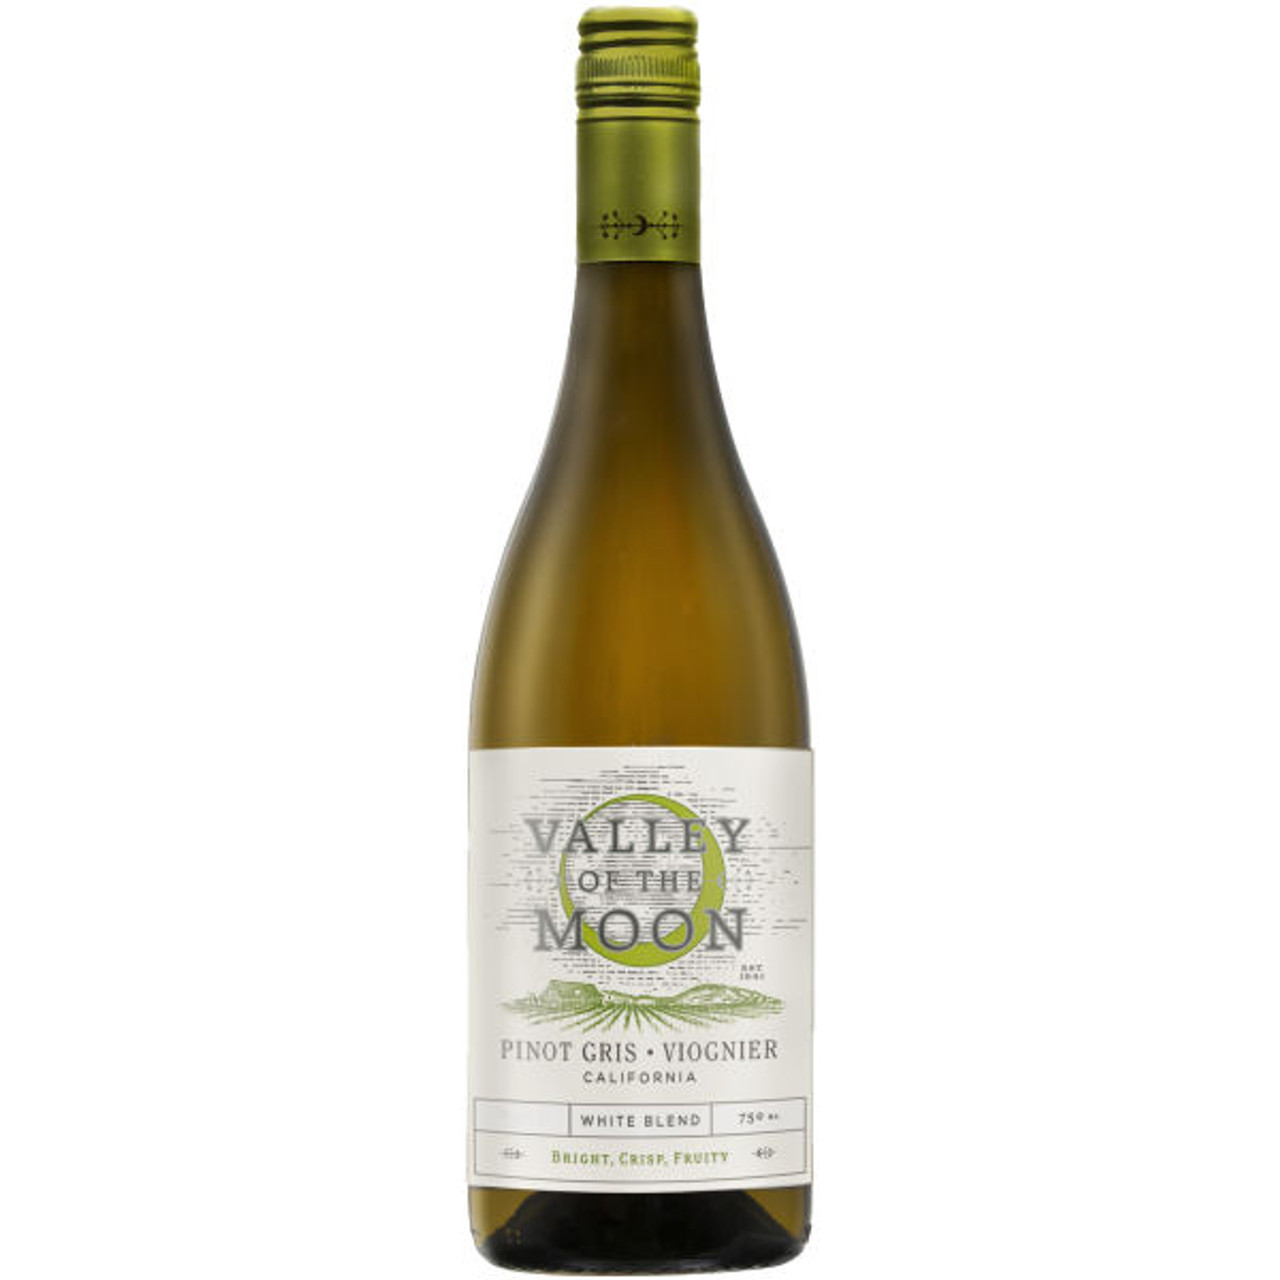 Valley of the Moon Sonoma Pinot Blanc Viognier